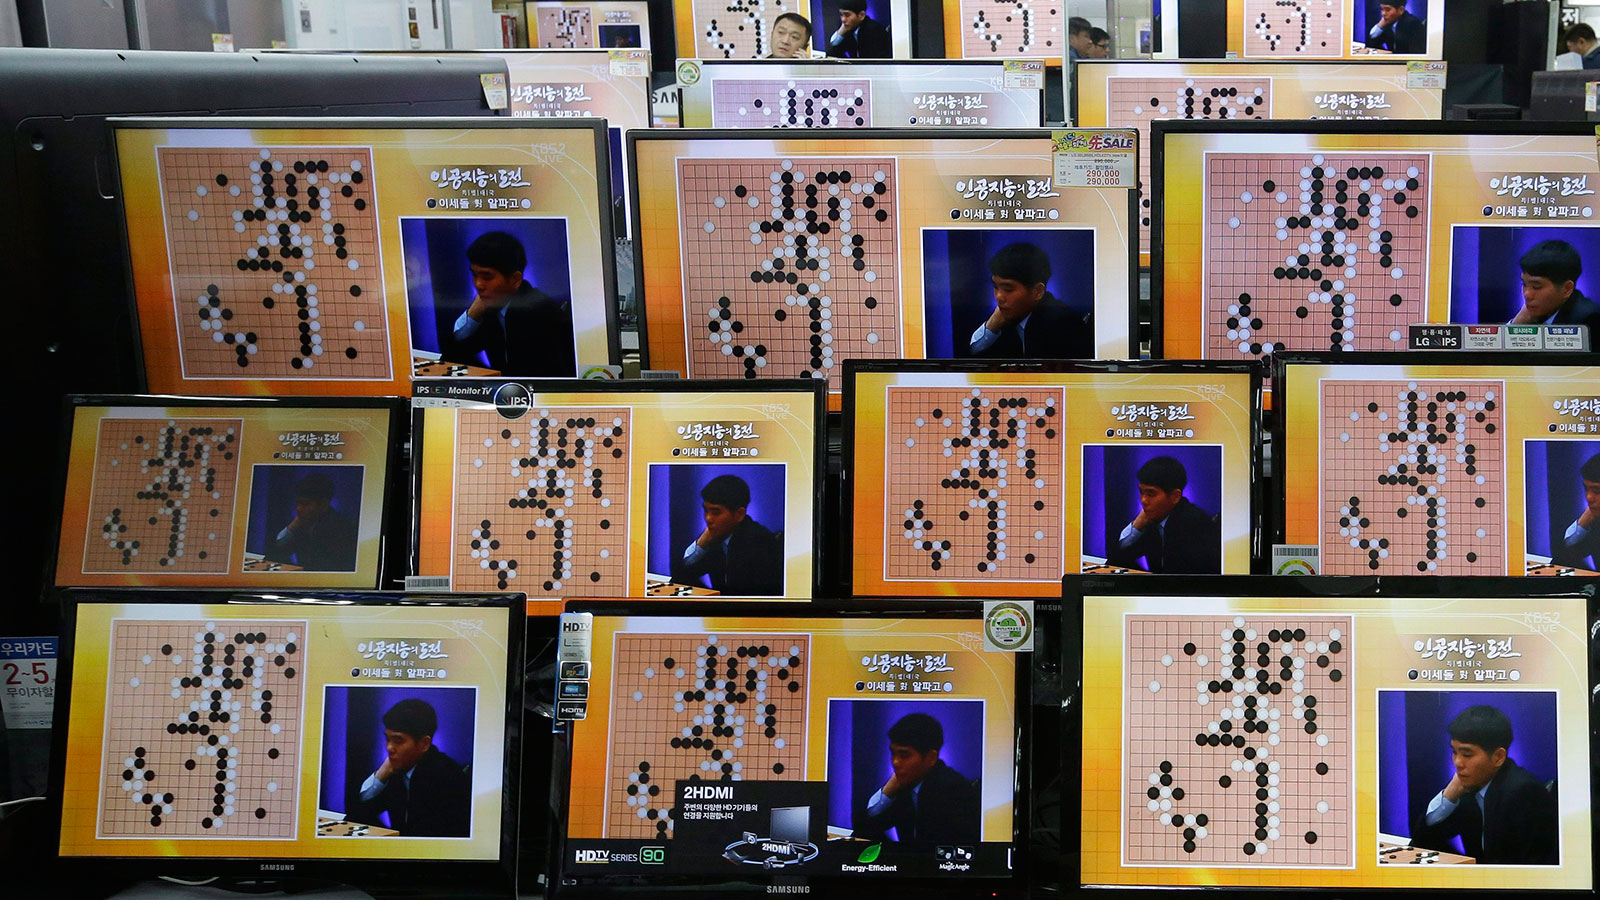 South Korean professional Go player Lee Sedol is seen on TV screens during the Google DeepMind Challenge Match against Google's artificial intelligence program, AlphaGo, at the Yongsan Electronic store in Seoul, South Korea, Wednesday, March 9, 2016. Google's computer program AlphaGo defeated its human opponent, Lee, in the first game of their highly anticipated five-game match. (Ahn Young-joon/AP)